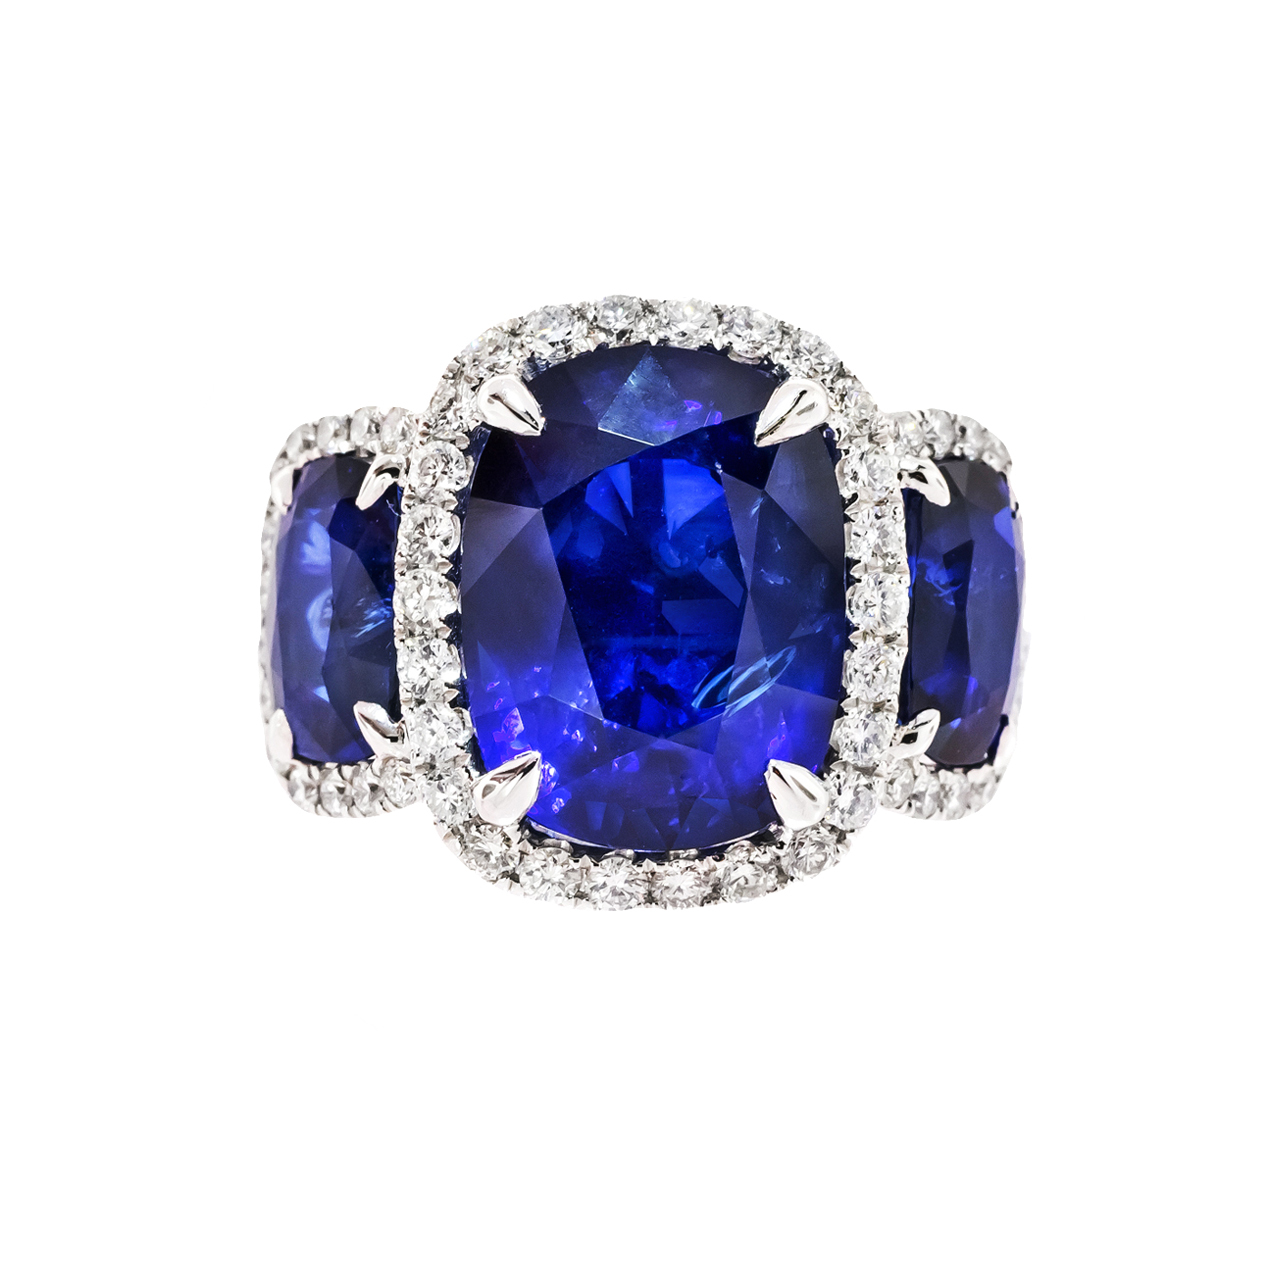 Sapphire Engagement Rings Color Vs Clarity Soho Gem